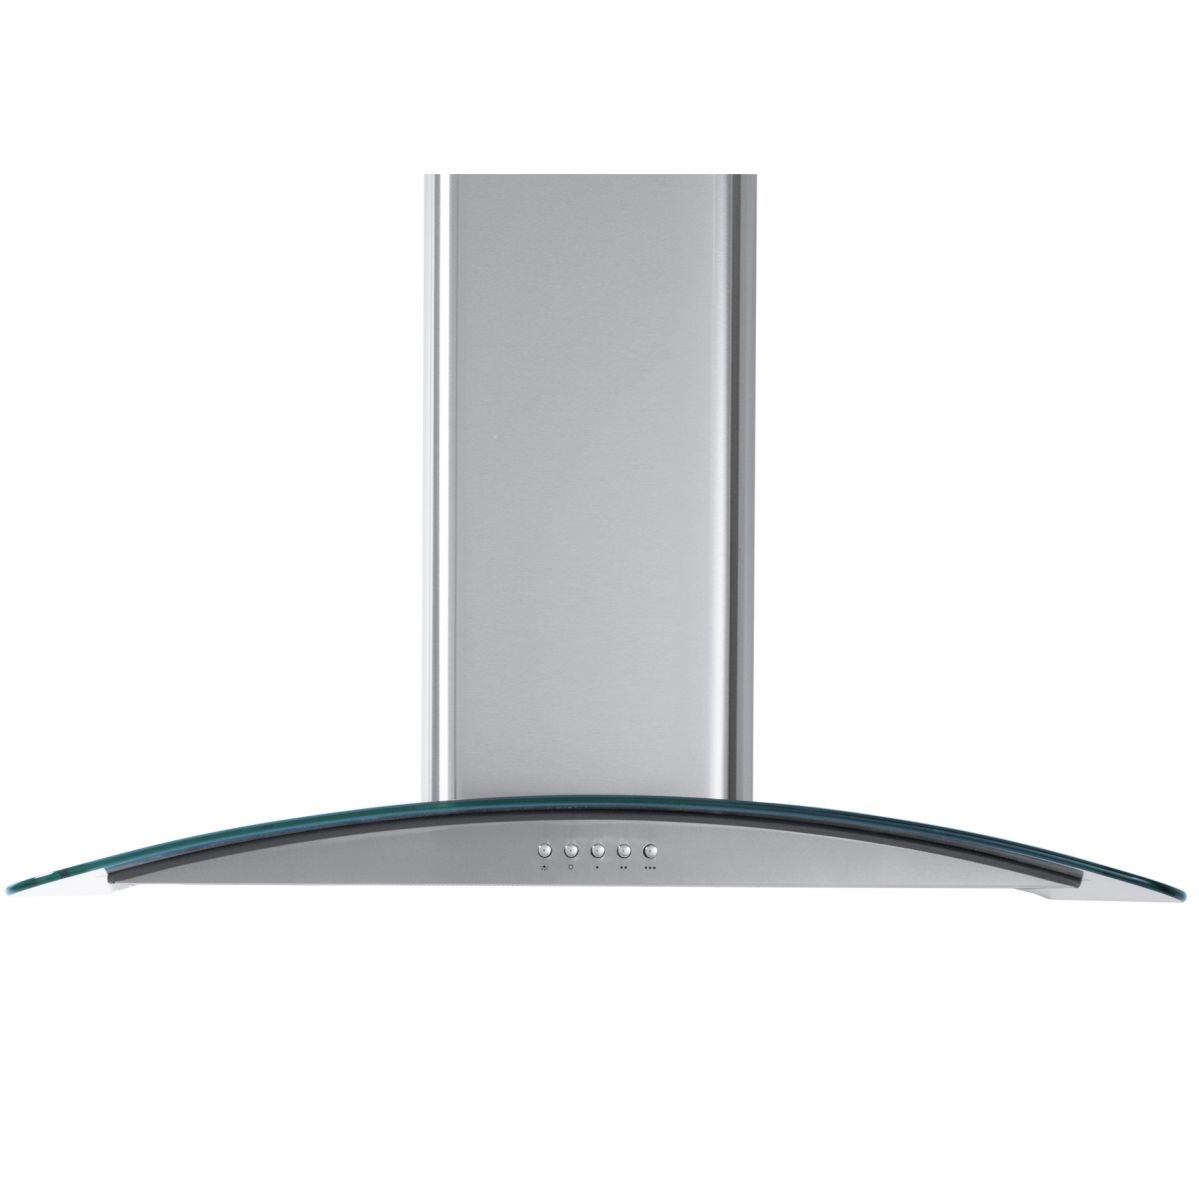 Cooker Hood With A Window ~ Myappliances ref cm curved glass chimney cooker